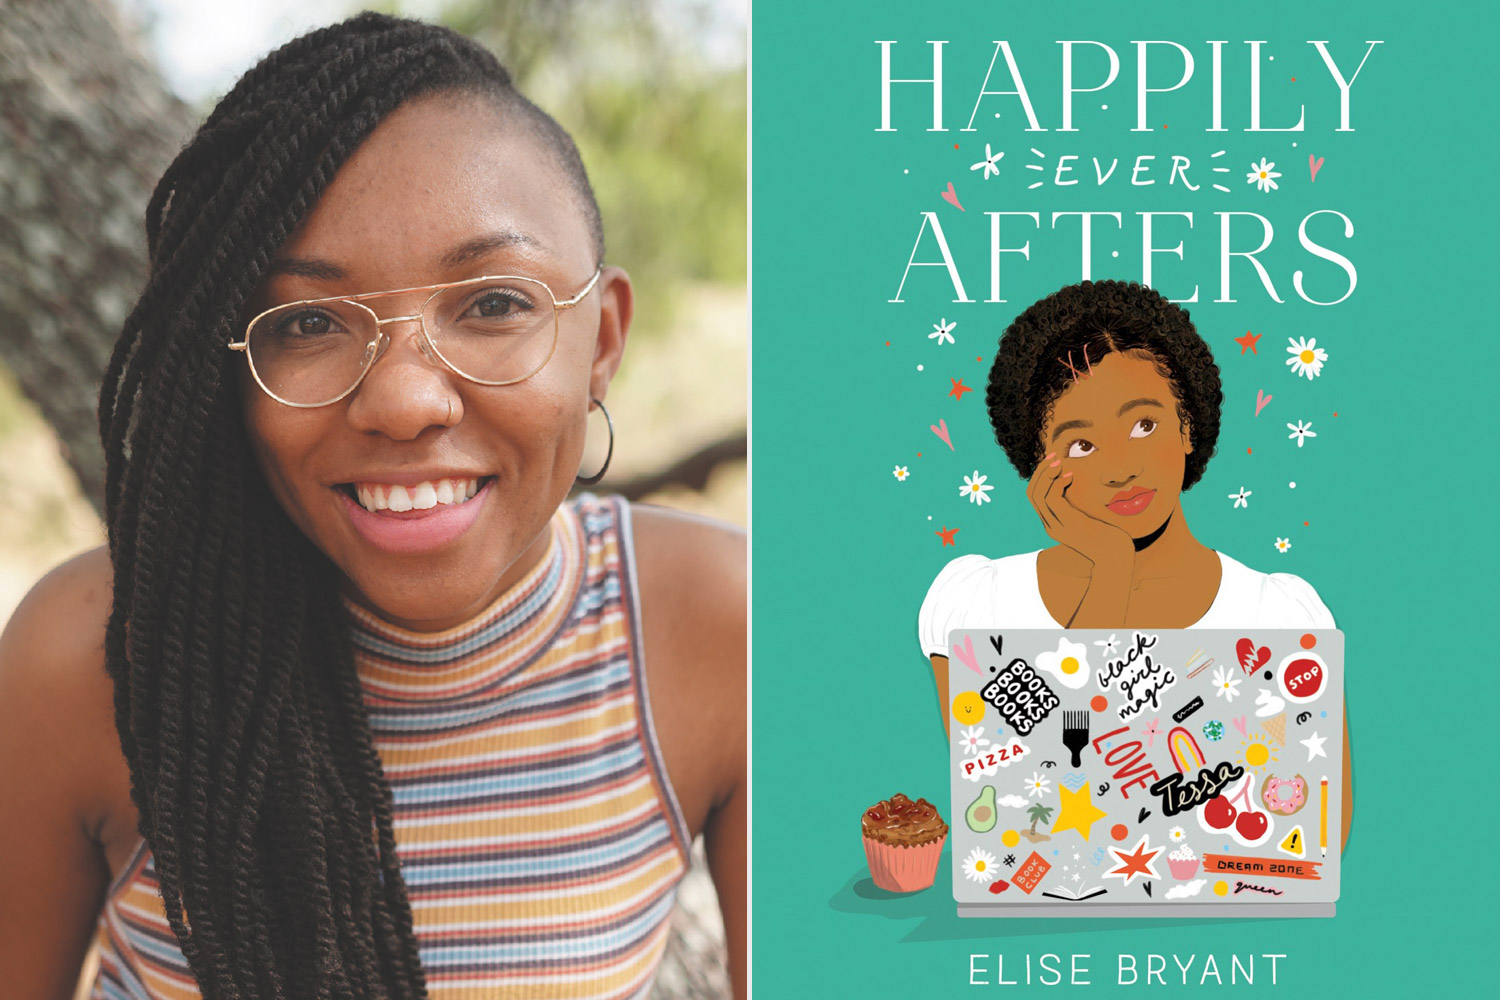 joya goffney/happily ever afters